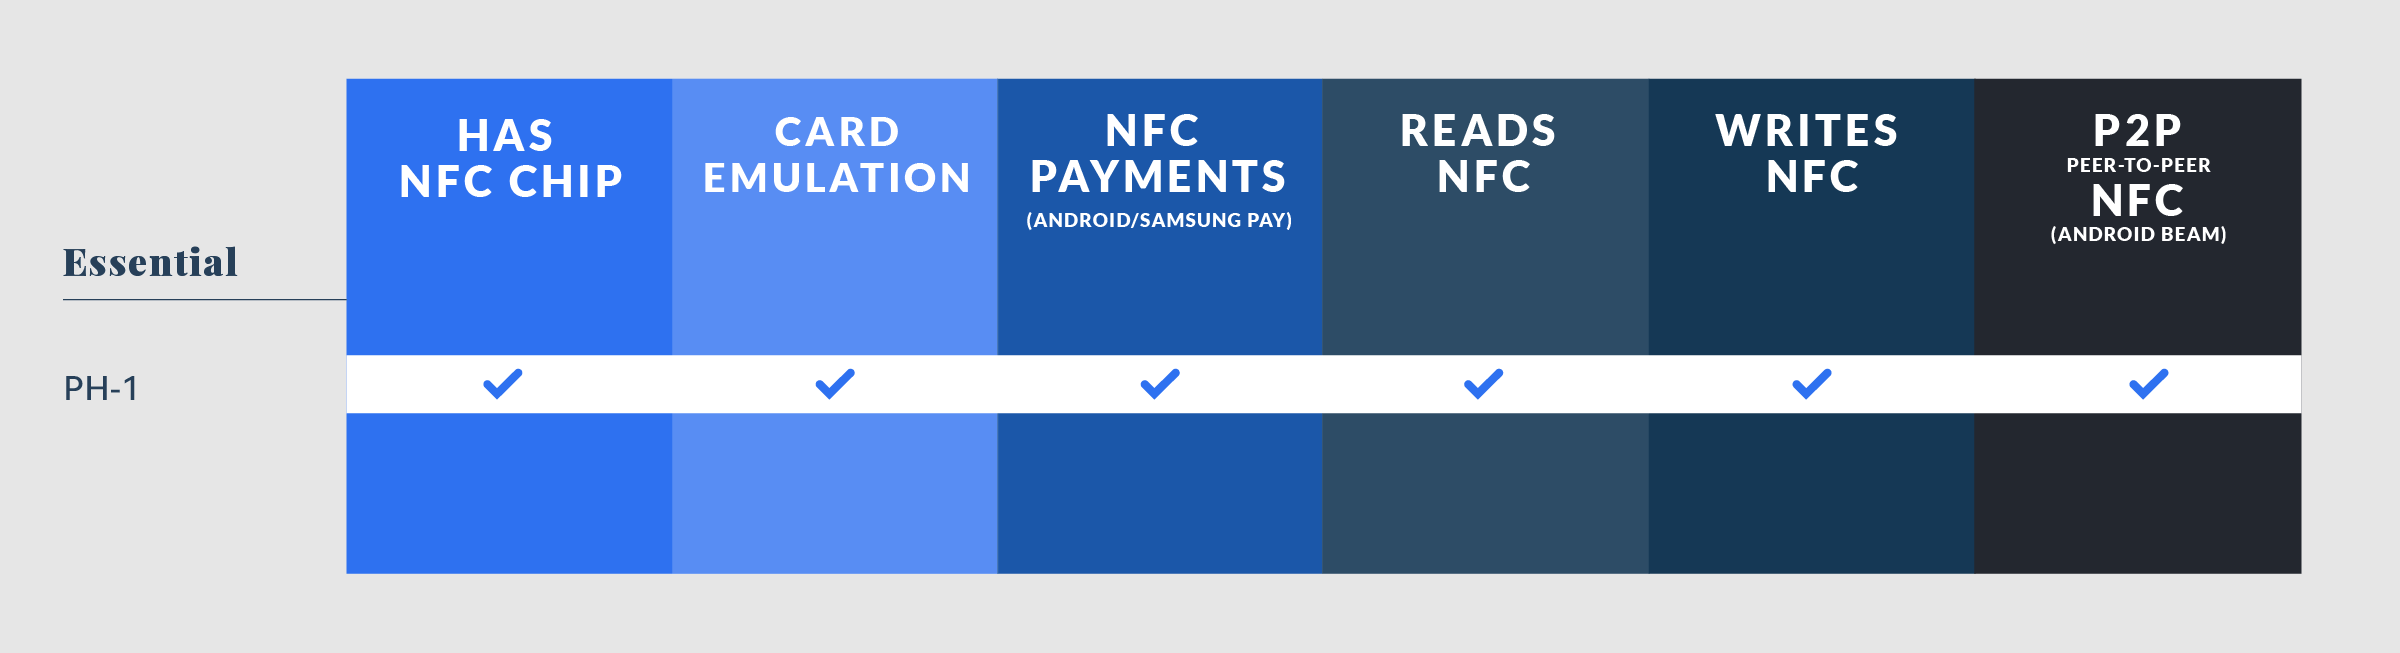 Essential Phone NFC Compatibility